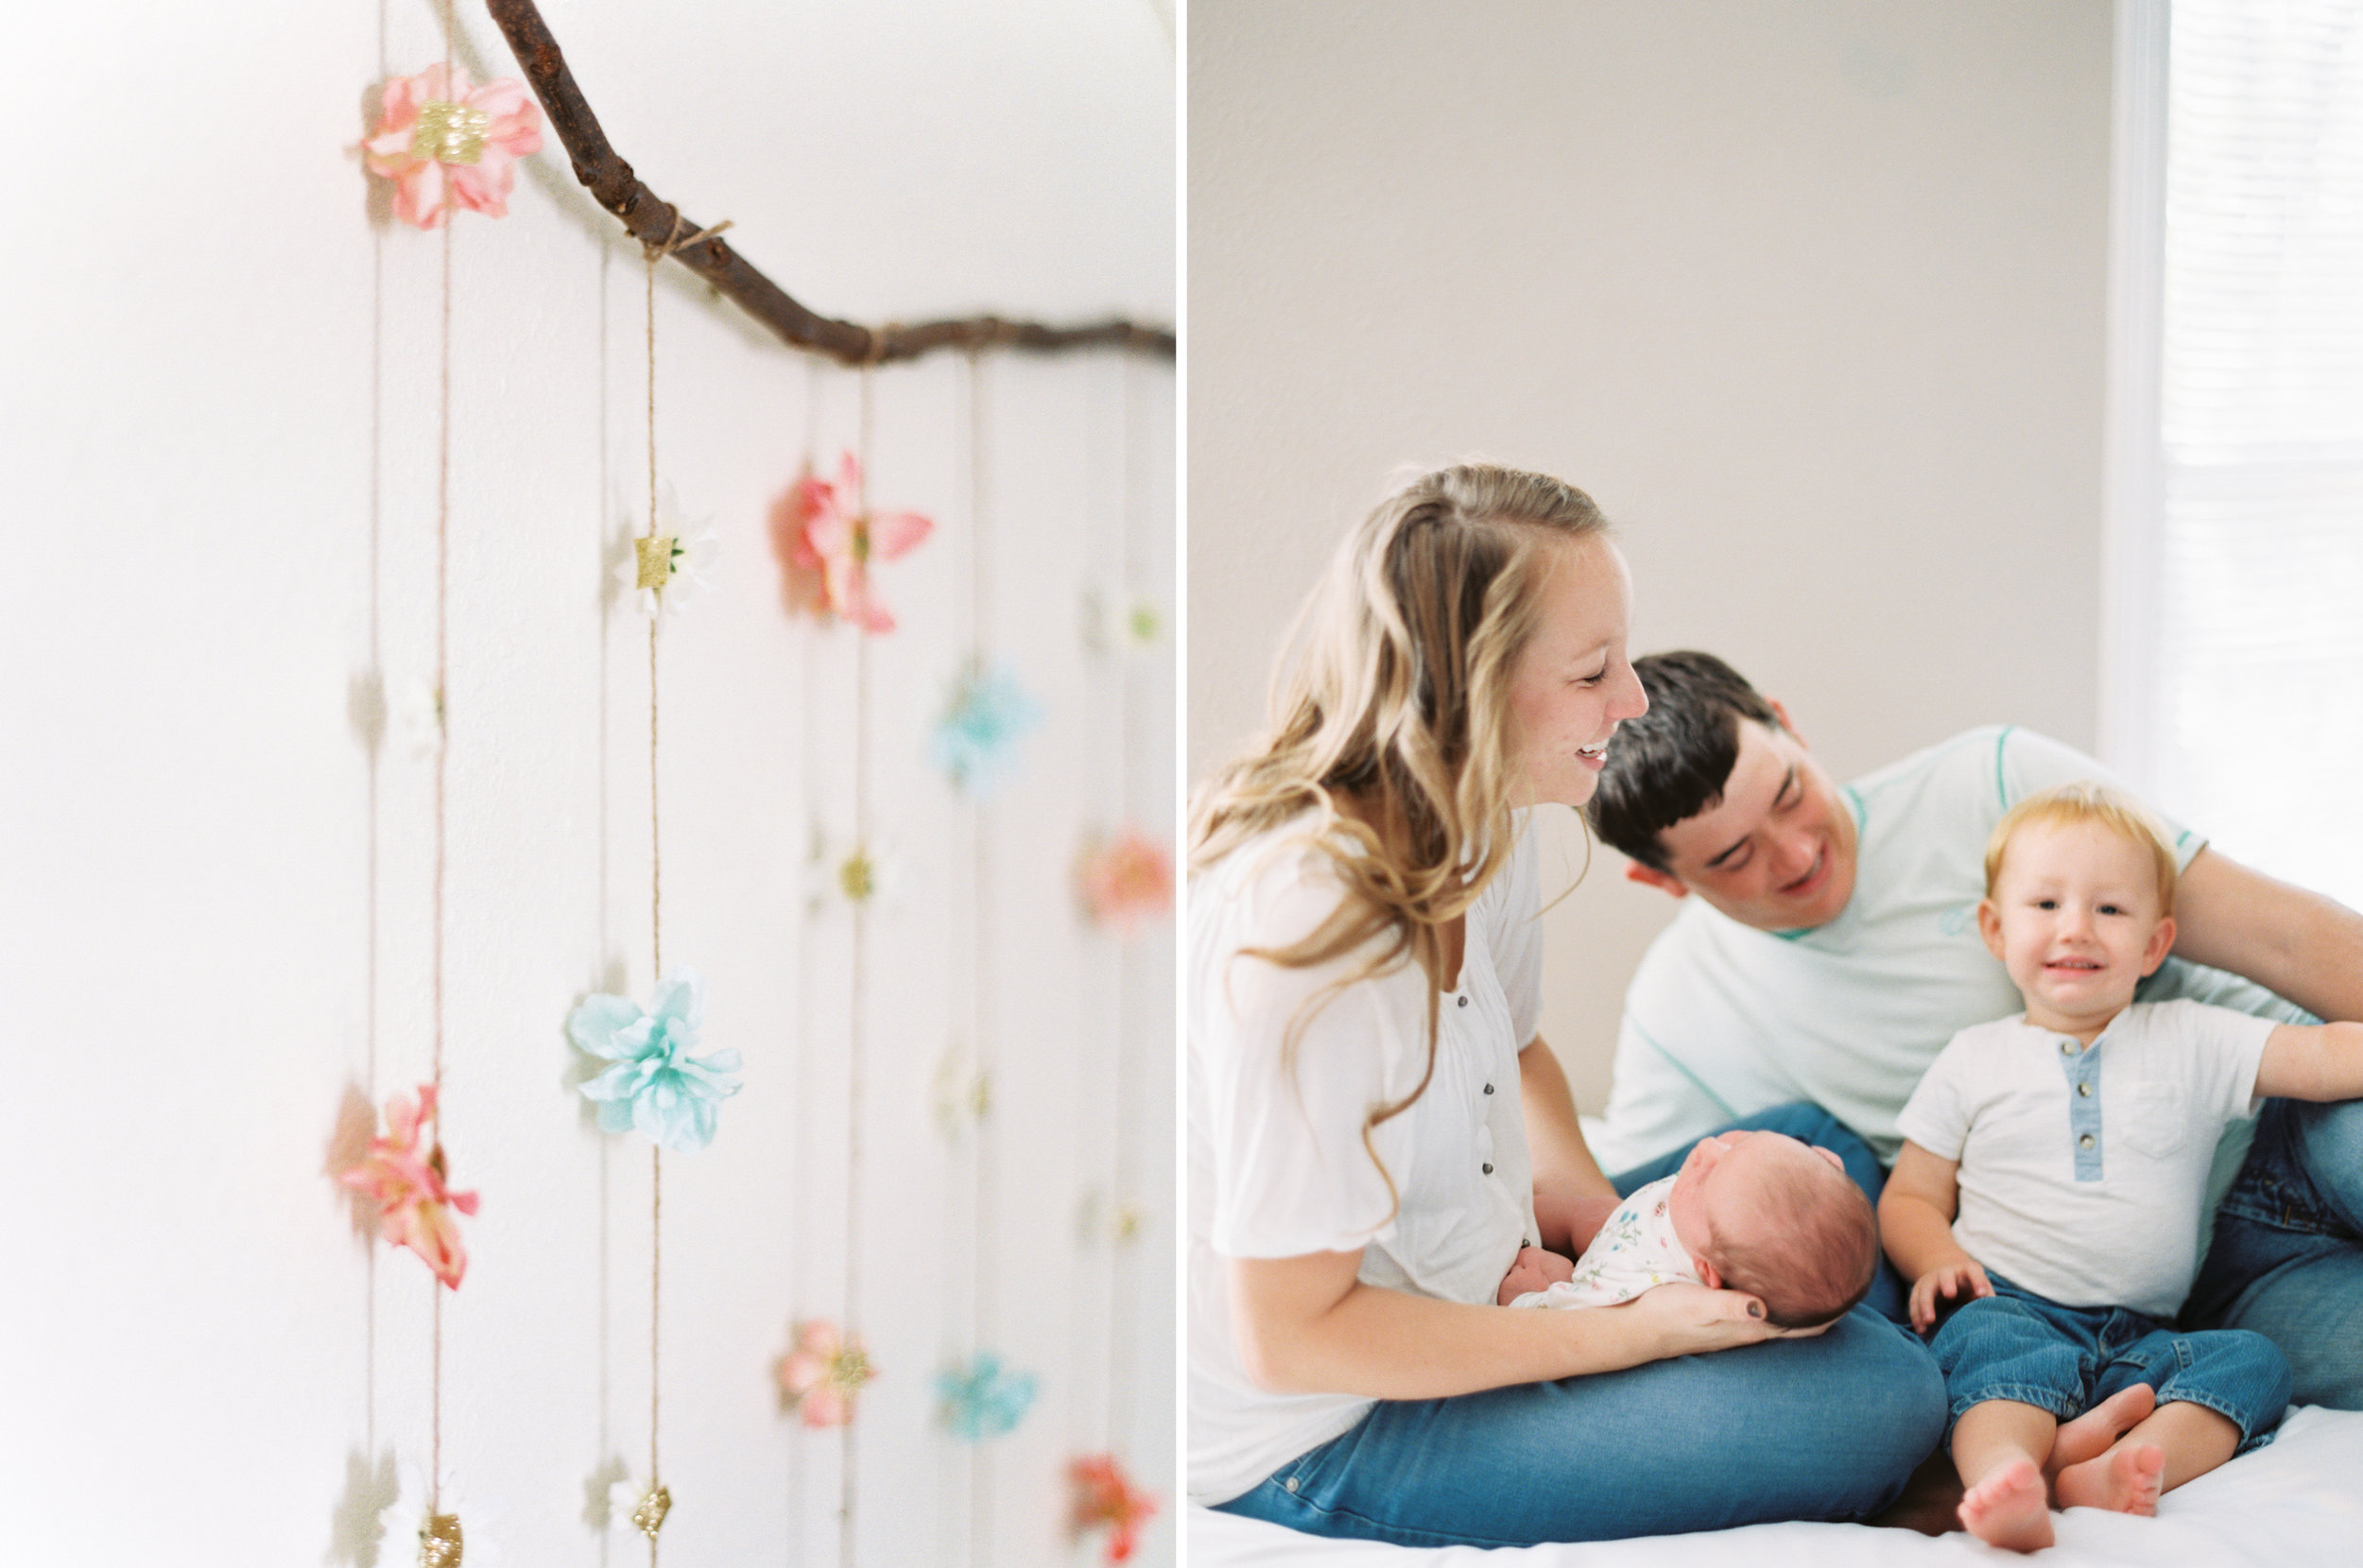 Adelaide & Family | Lifestyle Session | Britni Dean Photography